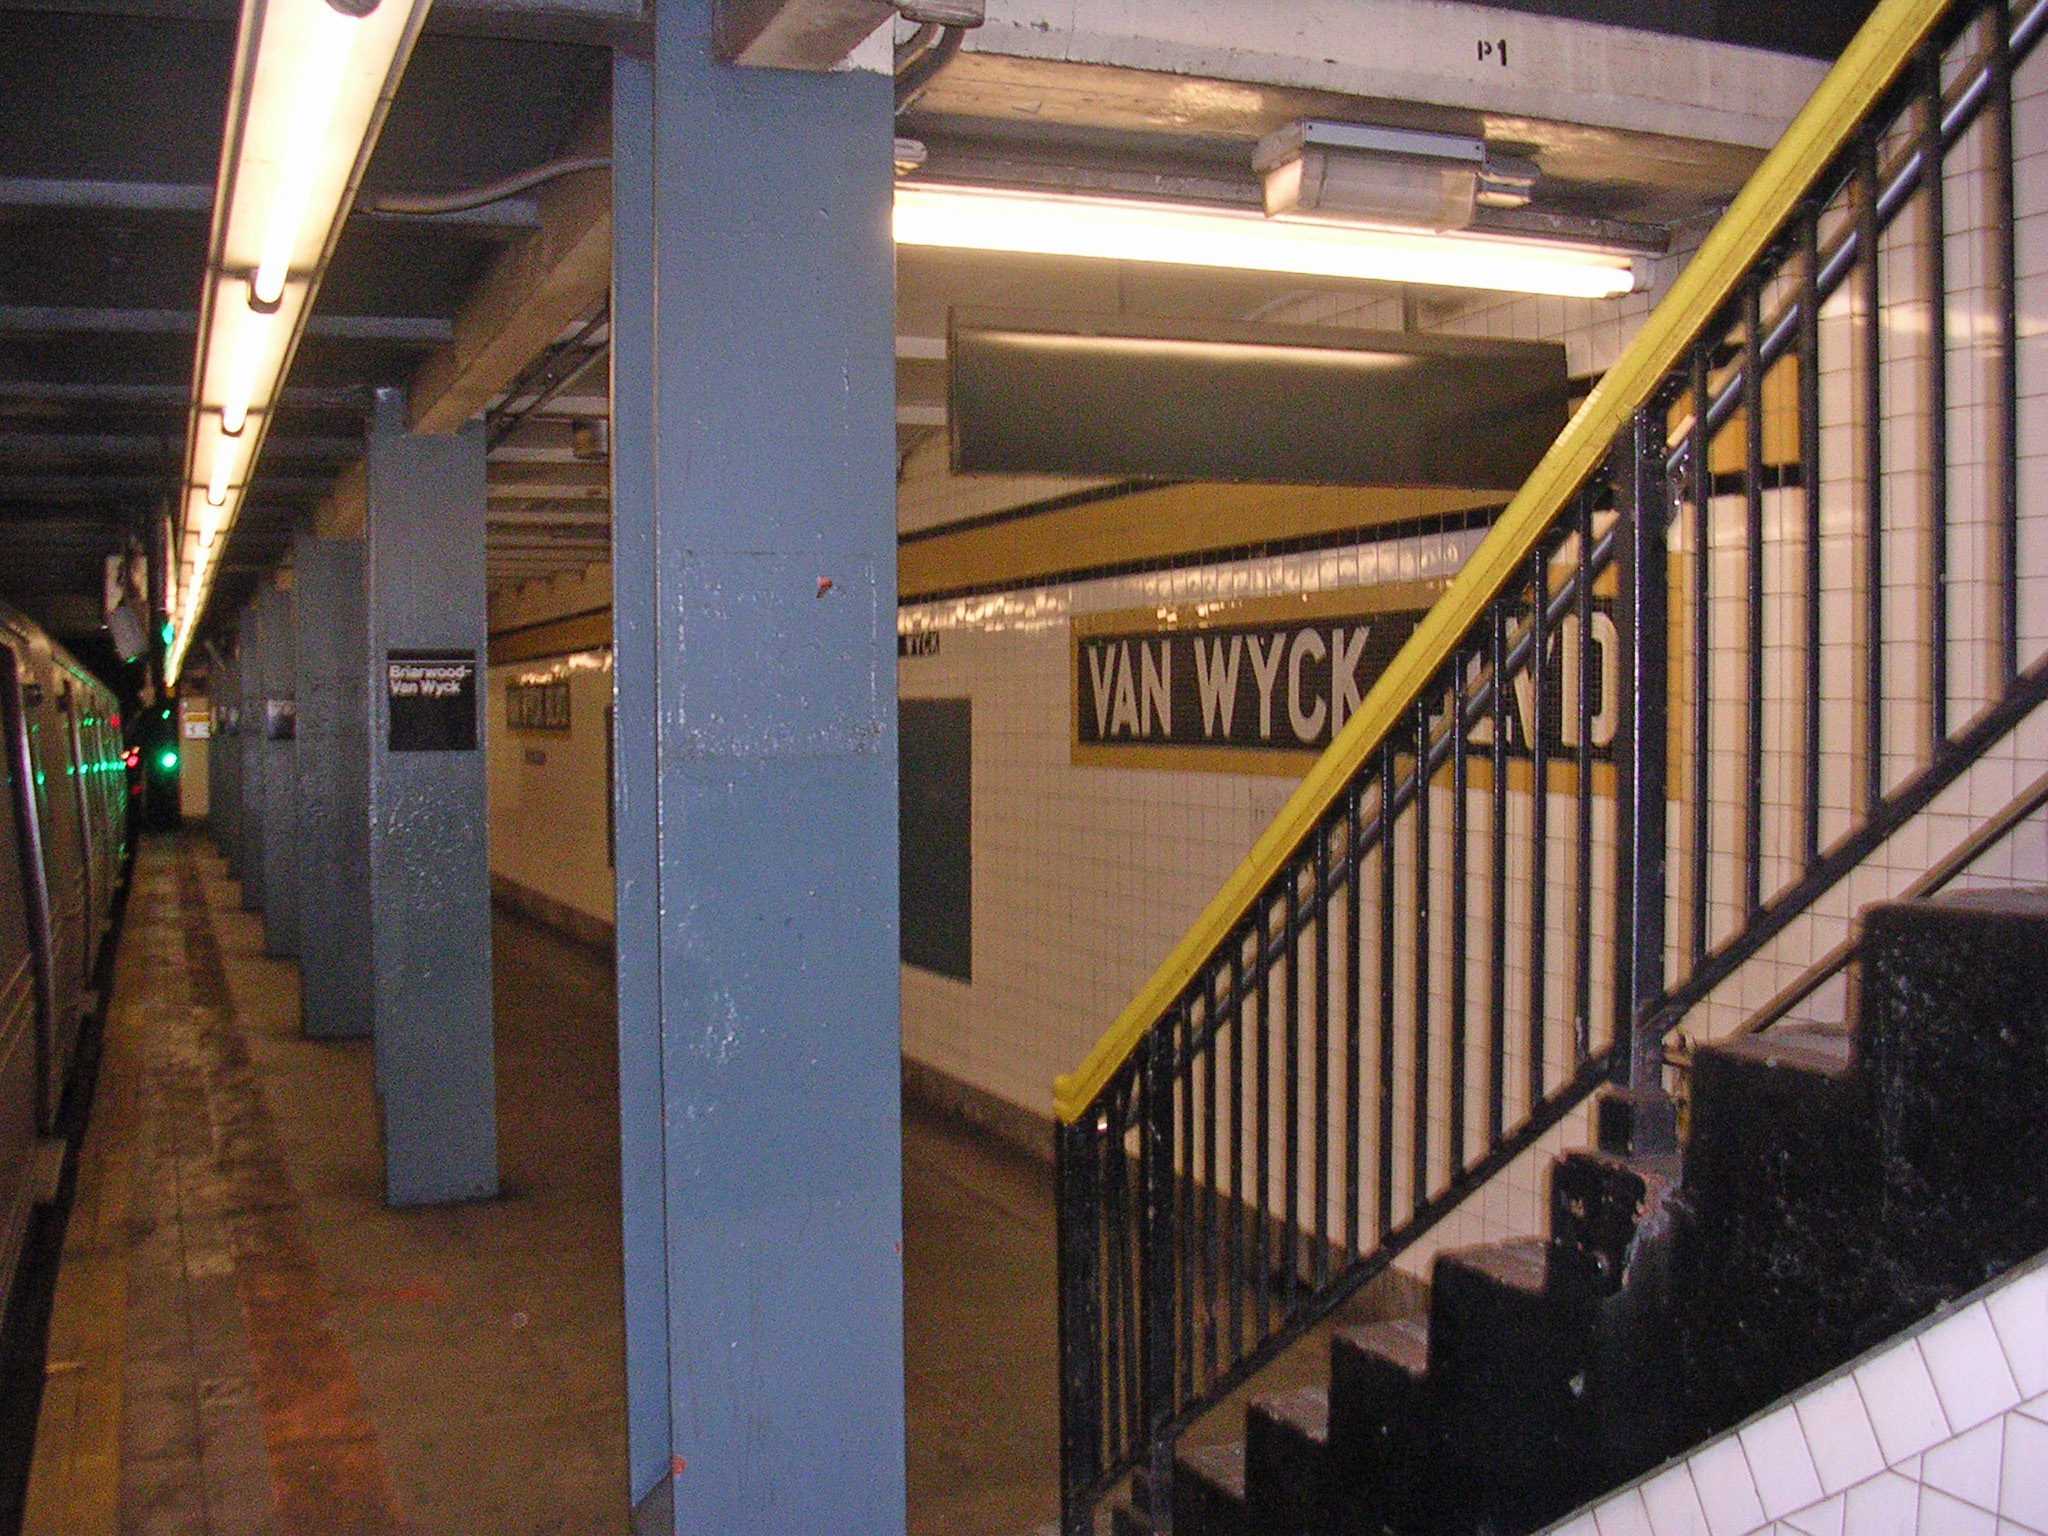 File:Van Wyck Subway Station by David Shankbone.jpg - Wikipedia ...